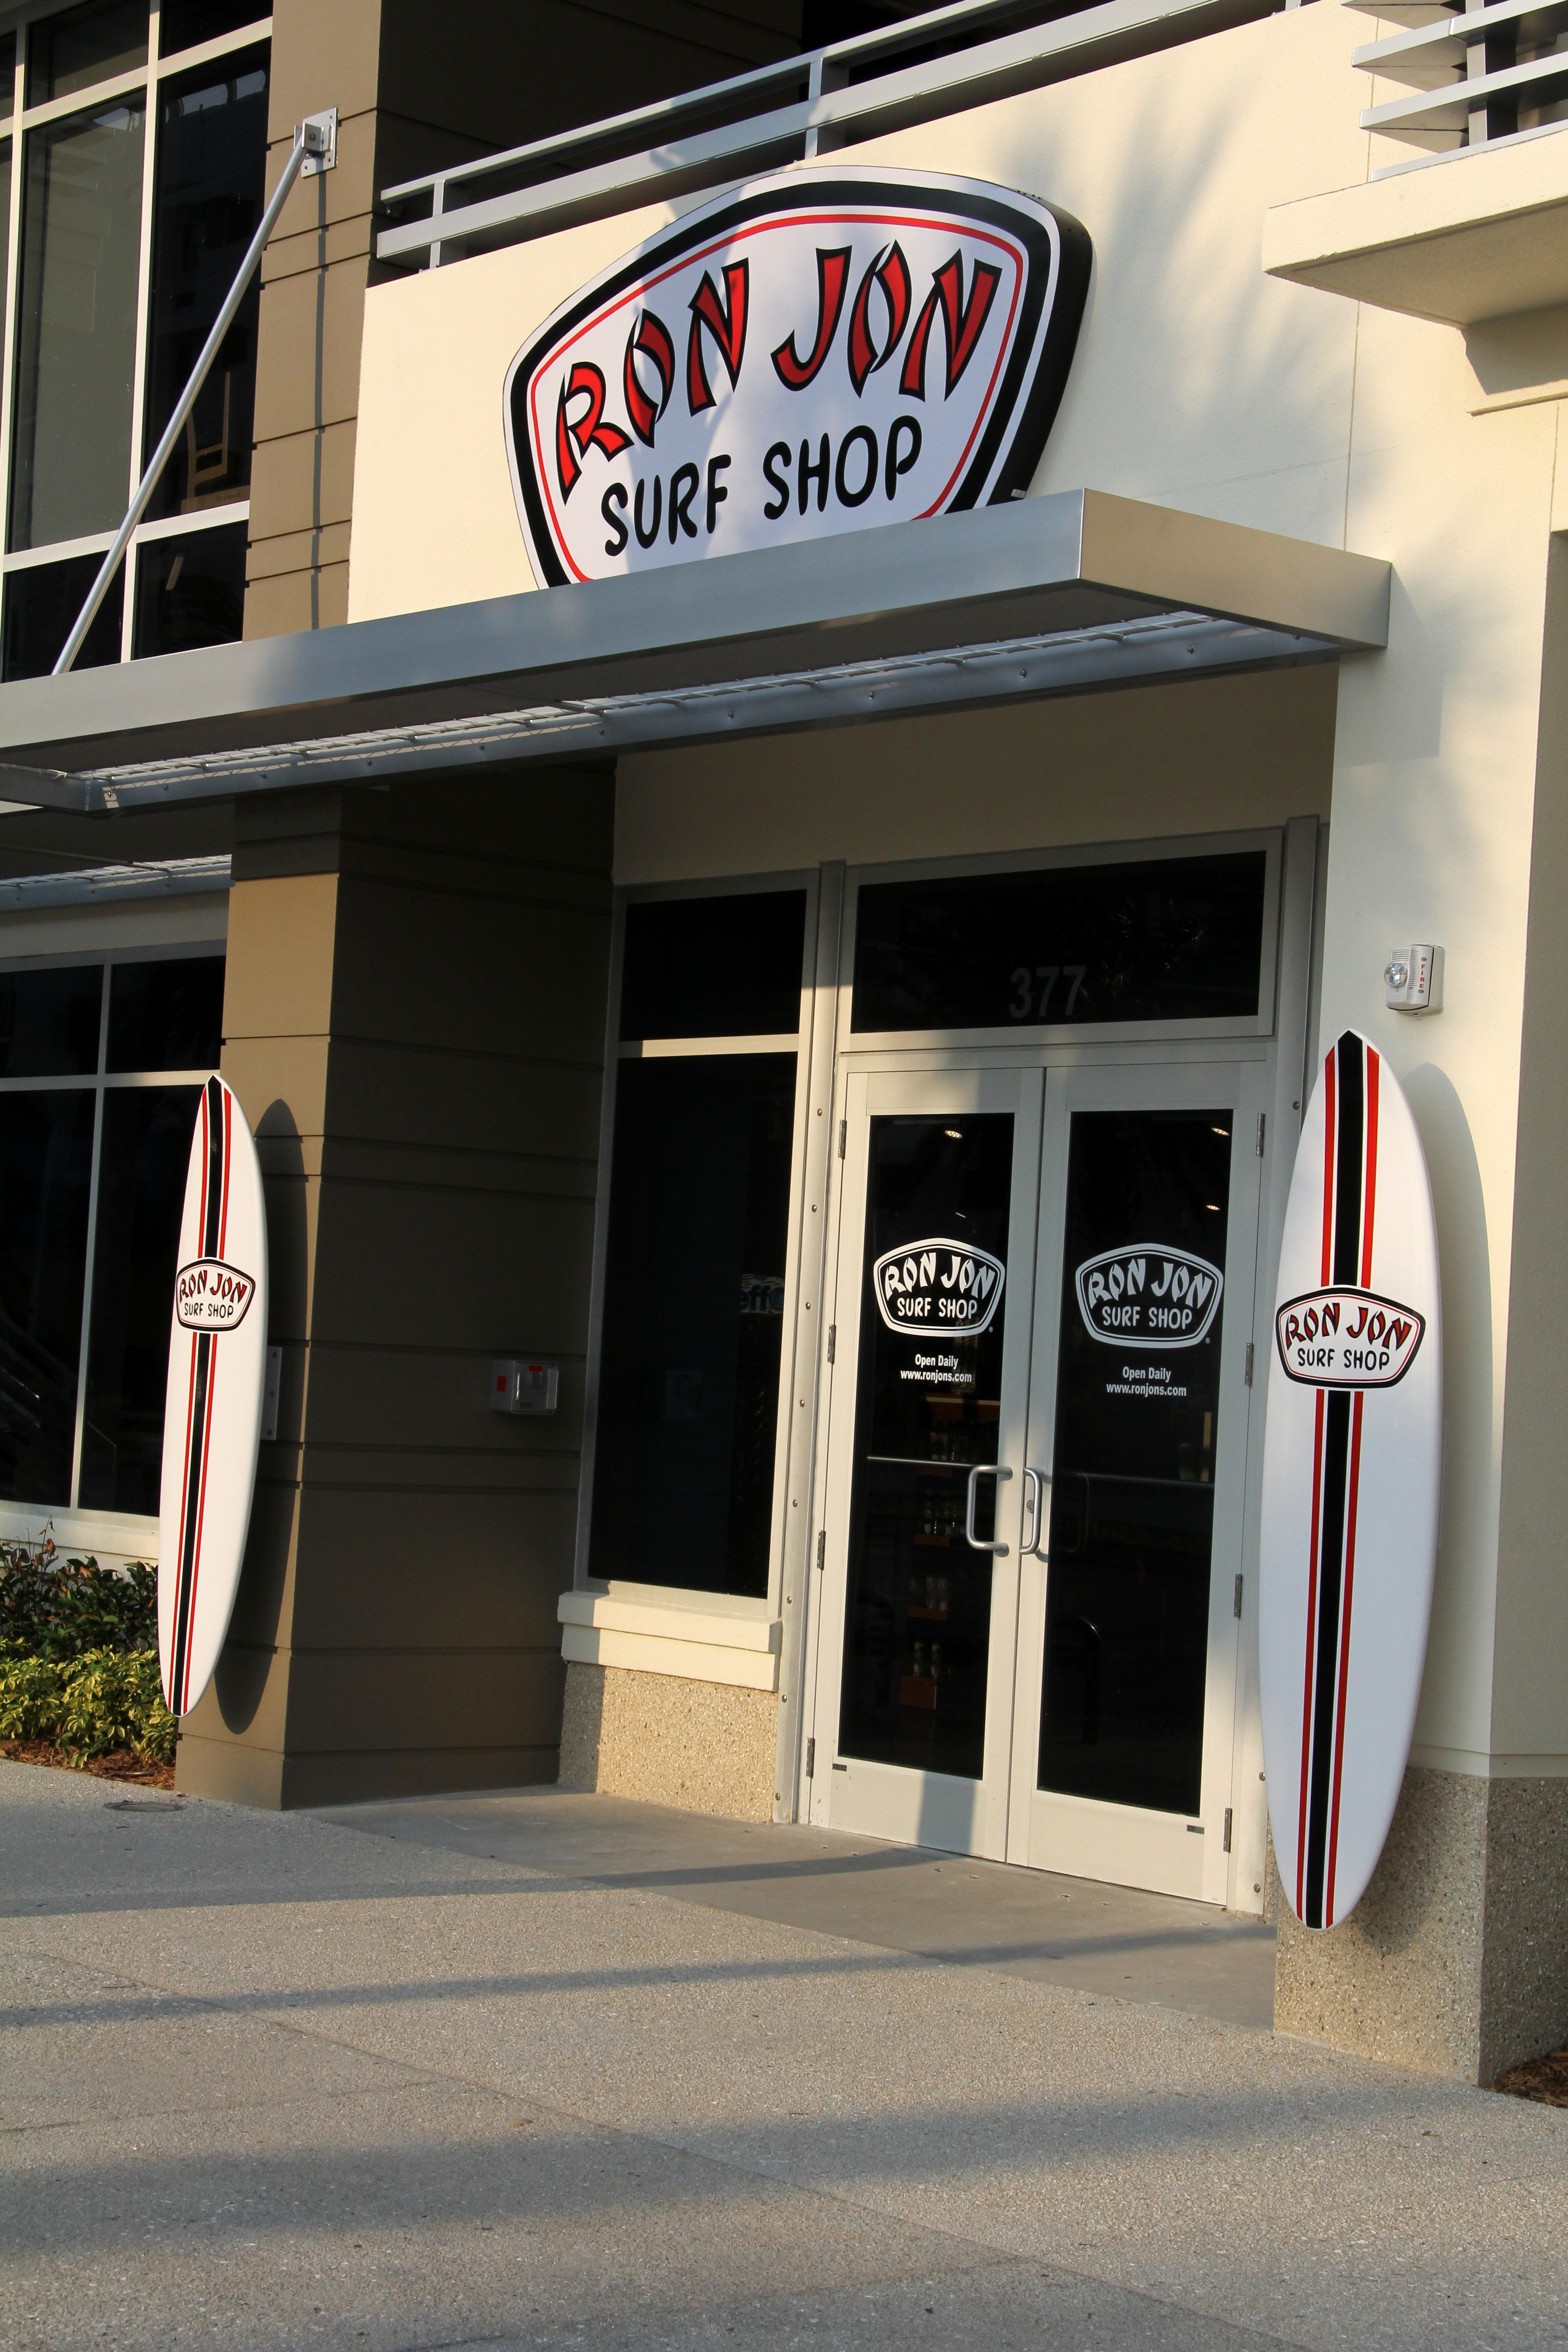 Ron Jon Surf Shop is now in Clearwater Beach! The store is located on the corner of Mandalay Avenue and the Causeway Boulevard roundabout, just steps away from the beautiful, white sand beach.